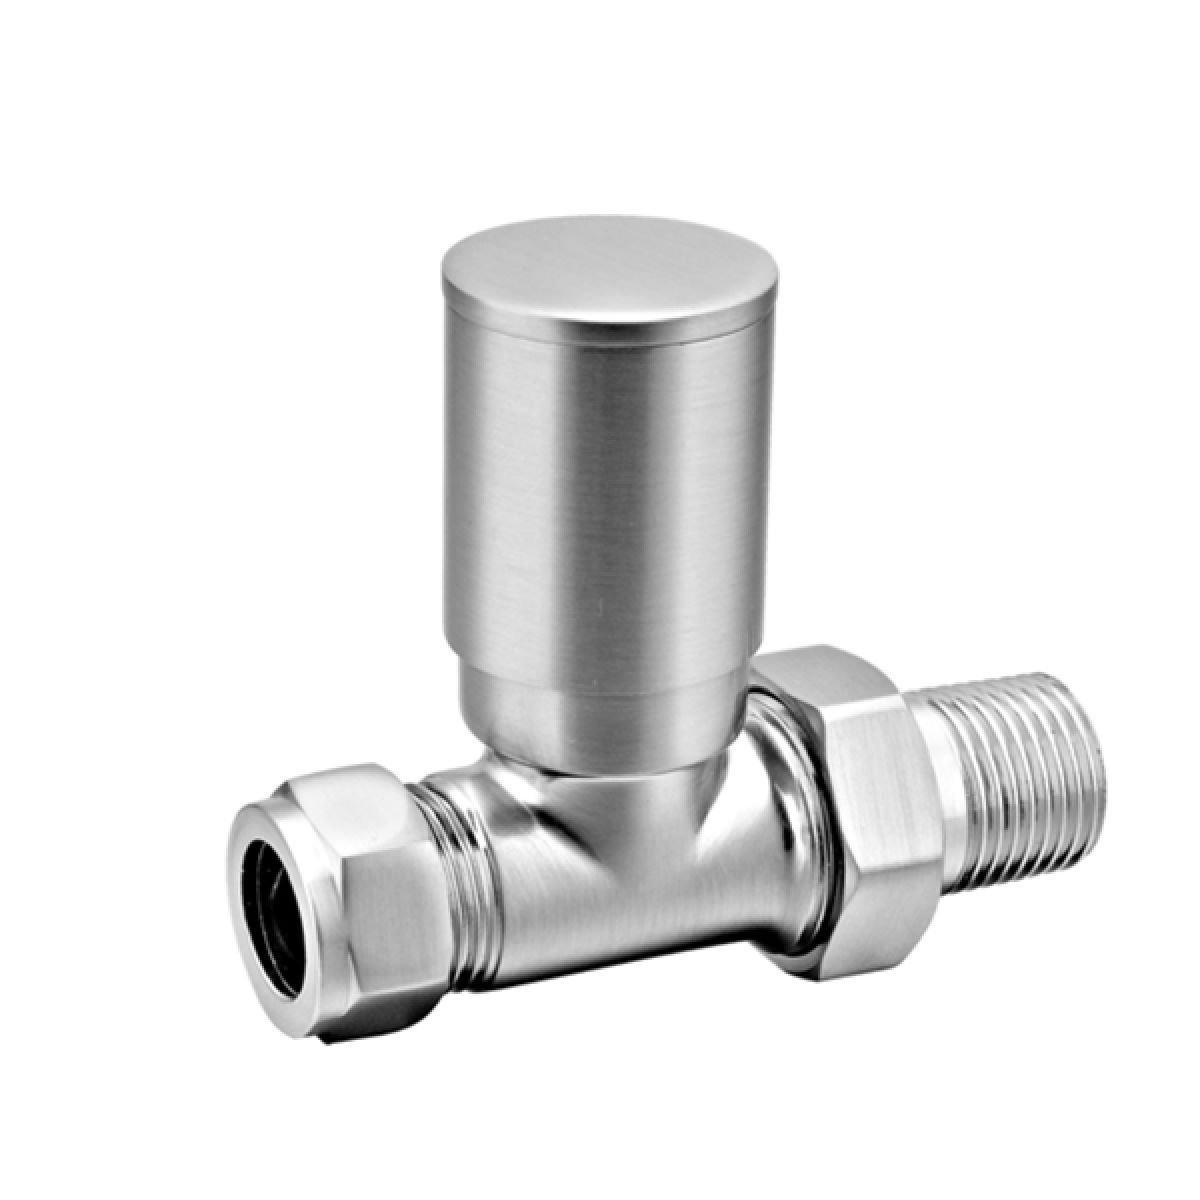 Reina Portland Brushed Straight Radiator Valve